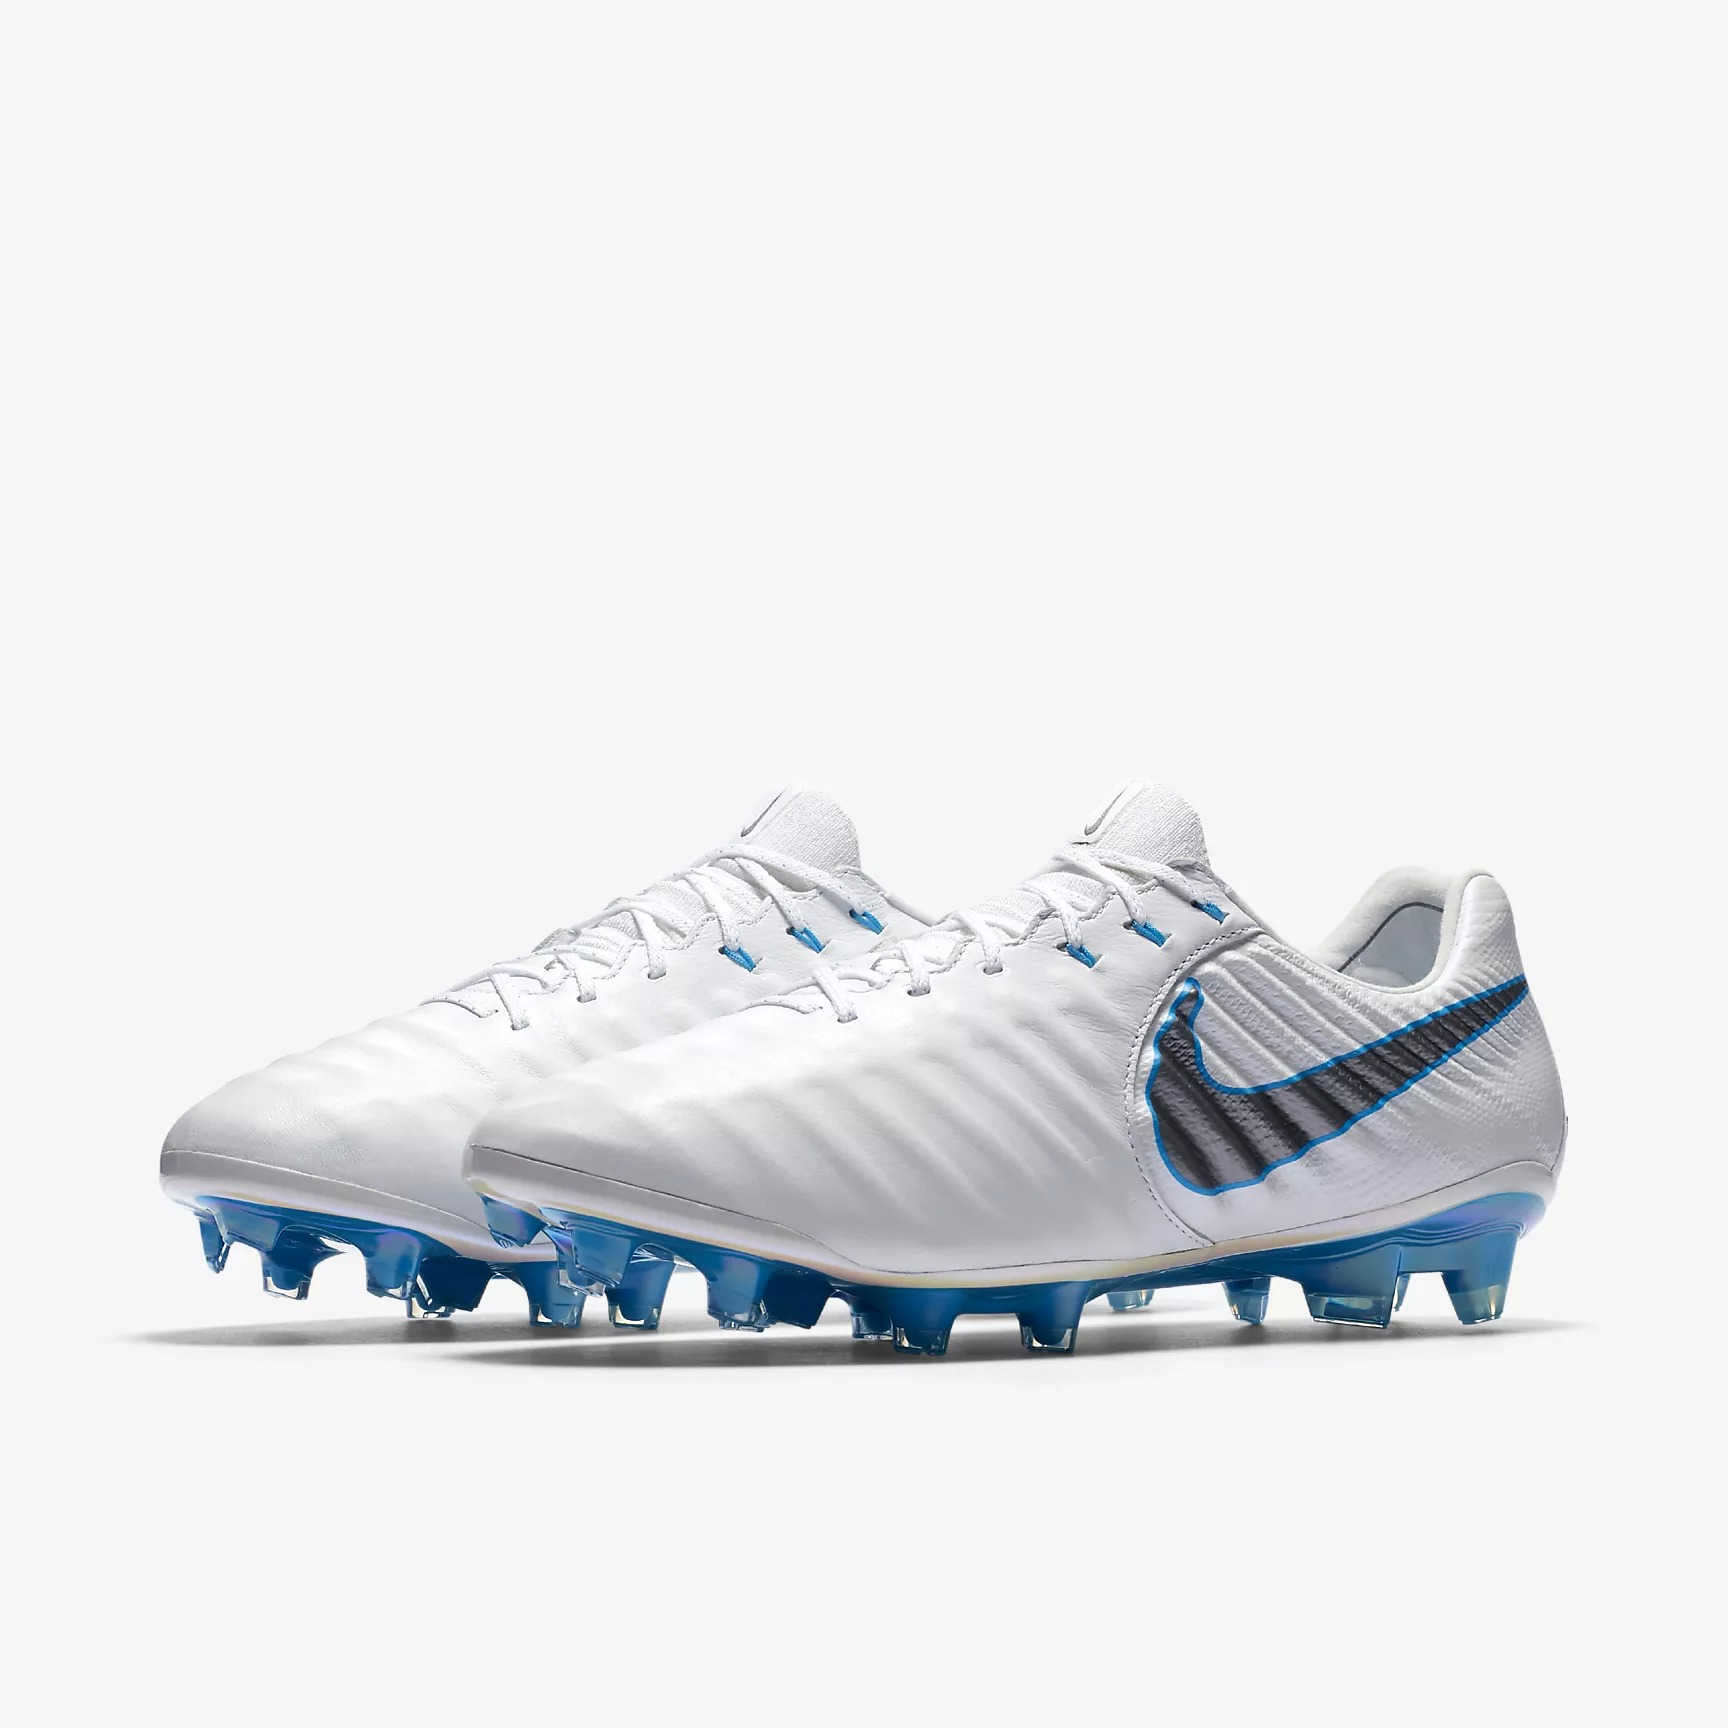 1360816ae70 ... Click to enlarge image  nike tiempo legend vii elite fg just do it pack white blue hero metallic cool grey metallic cool grey d.jpg  ...